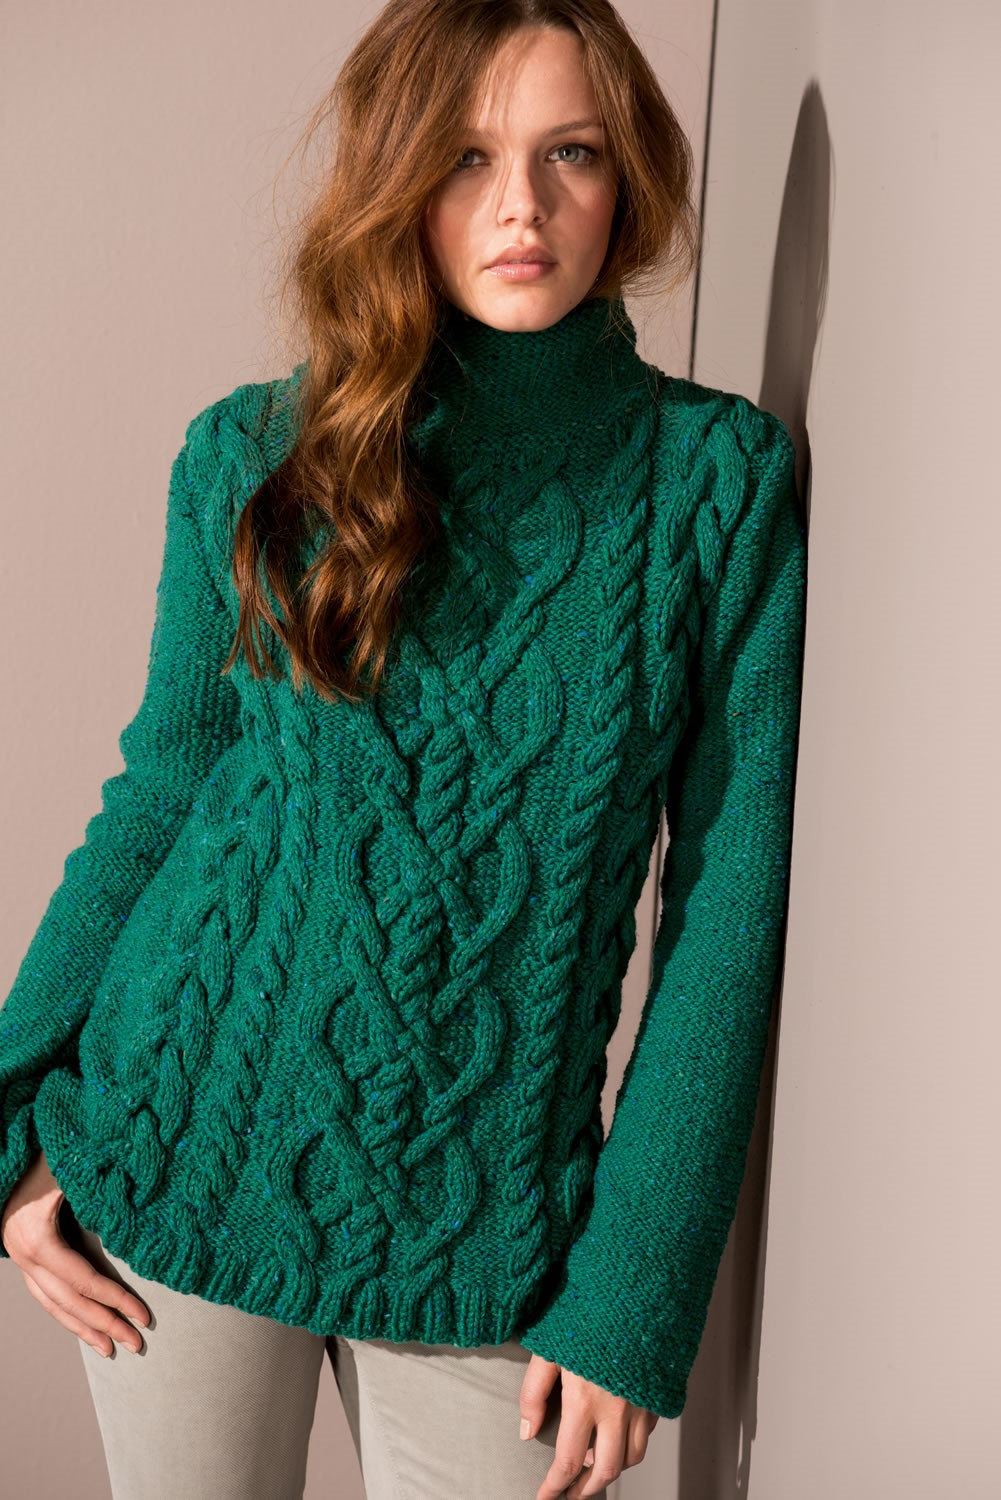 Lana Grossa PULLOVER in Royal Tweed